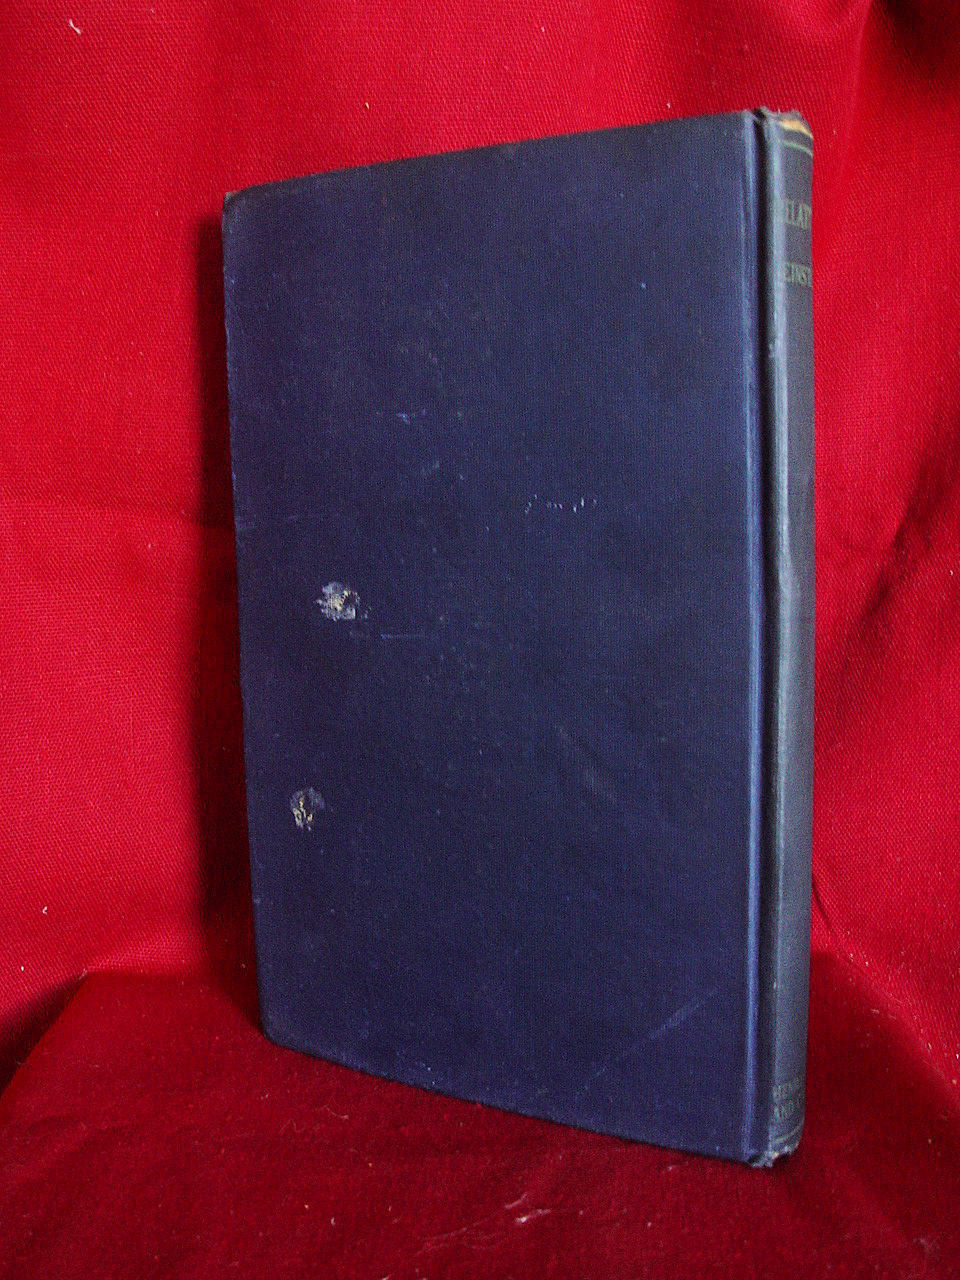 Albert Einstein RELATIVITY THE SPECIAL AND GENERAL TH. 1920 1st US edition